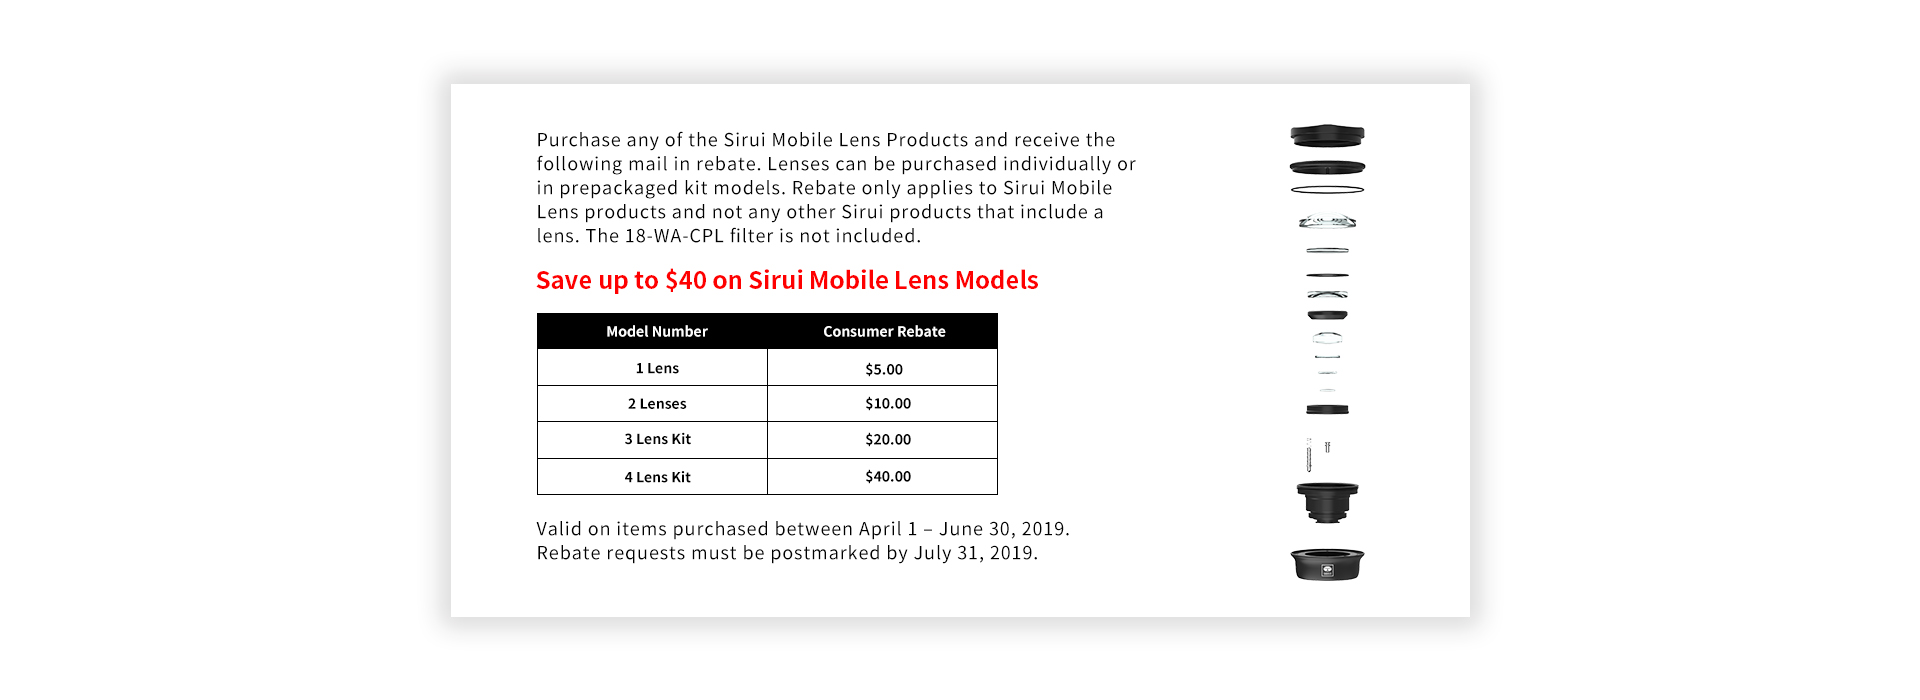 Up to $40 MIR on Mobile Lens Models